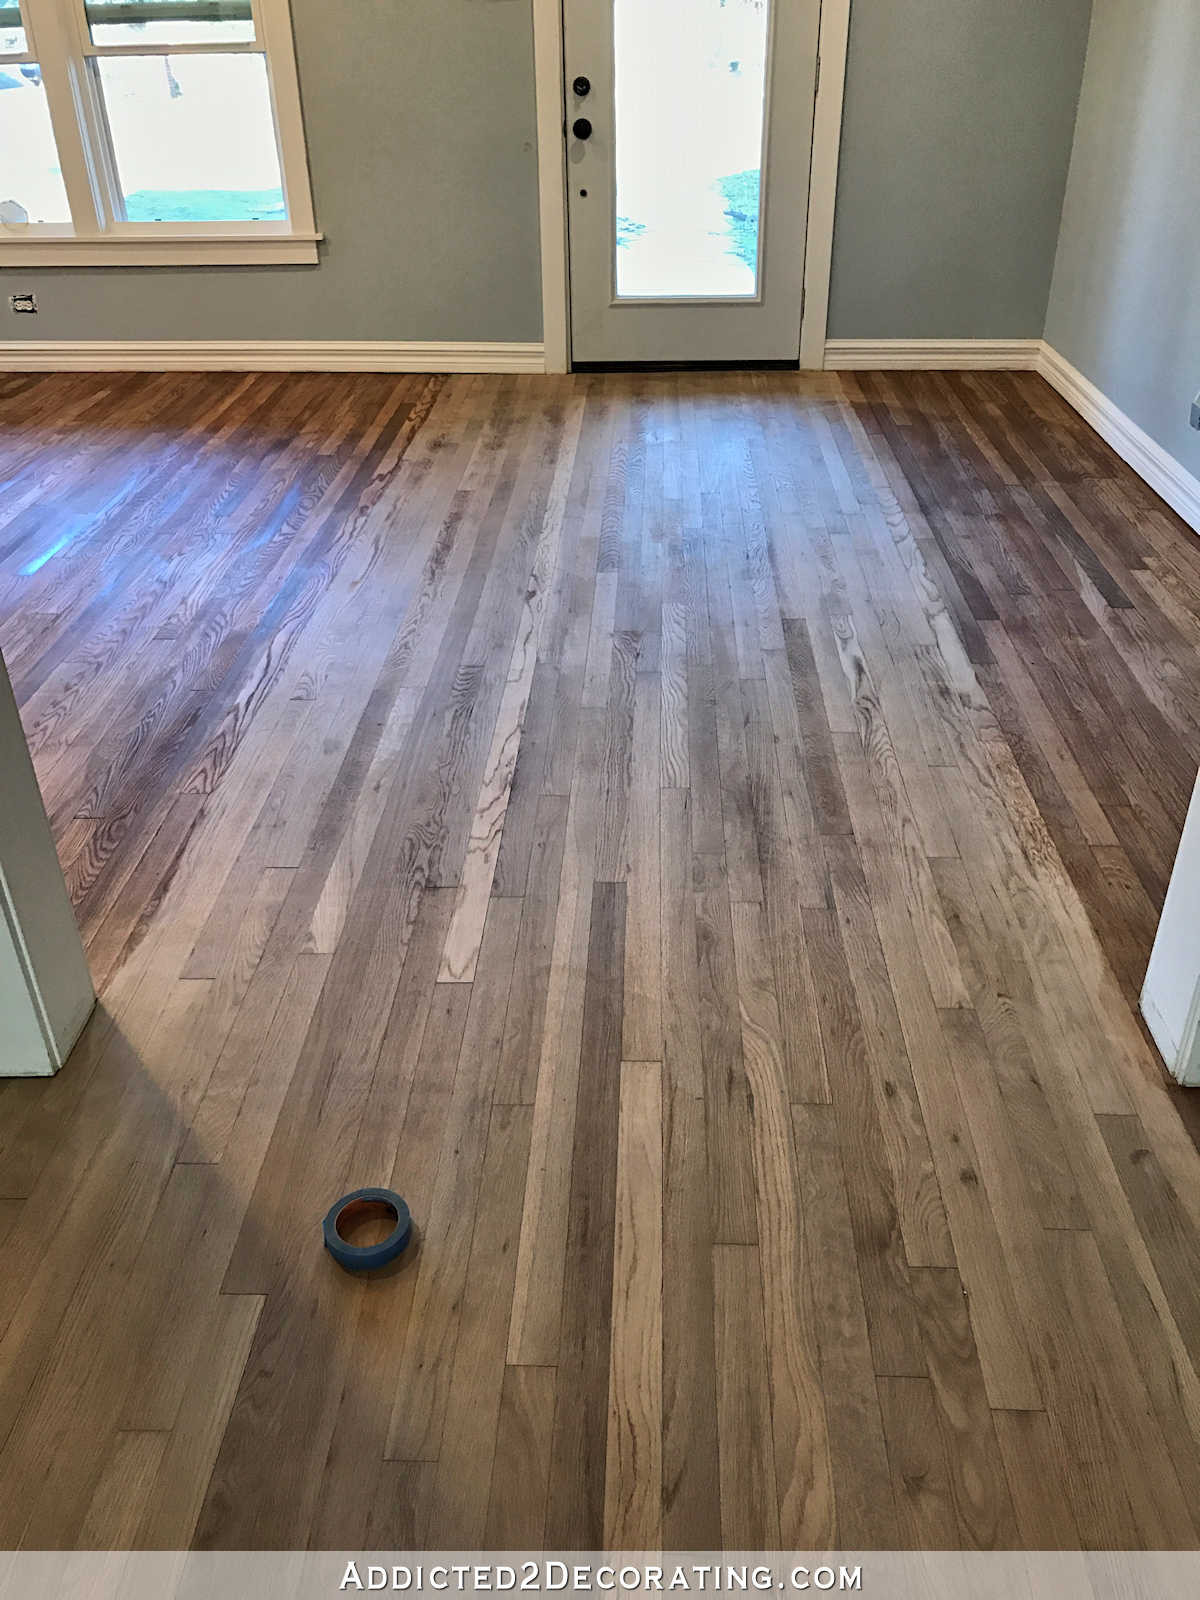 How to Refinish Hardwood Floors that Have Been Painted Of Adventures In Staining My Red Oak Hardwood Floors Products Process with Staining Red Oak Hardwood Floors 4 Entryway and Living Room Wood Conditioner